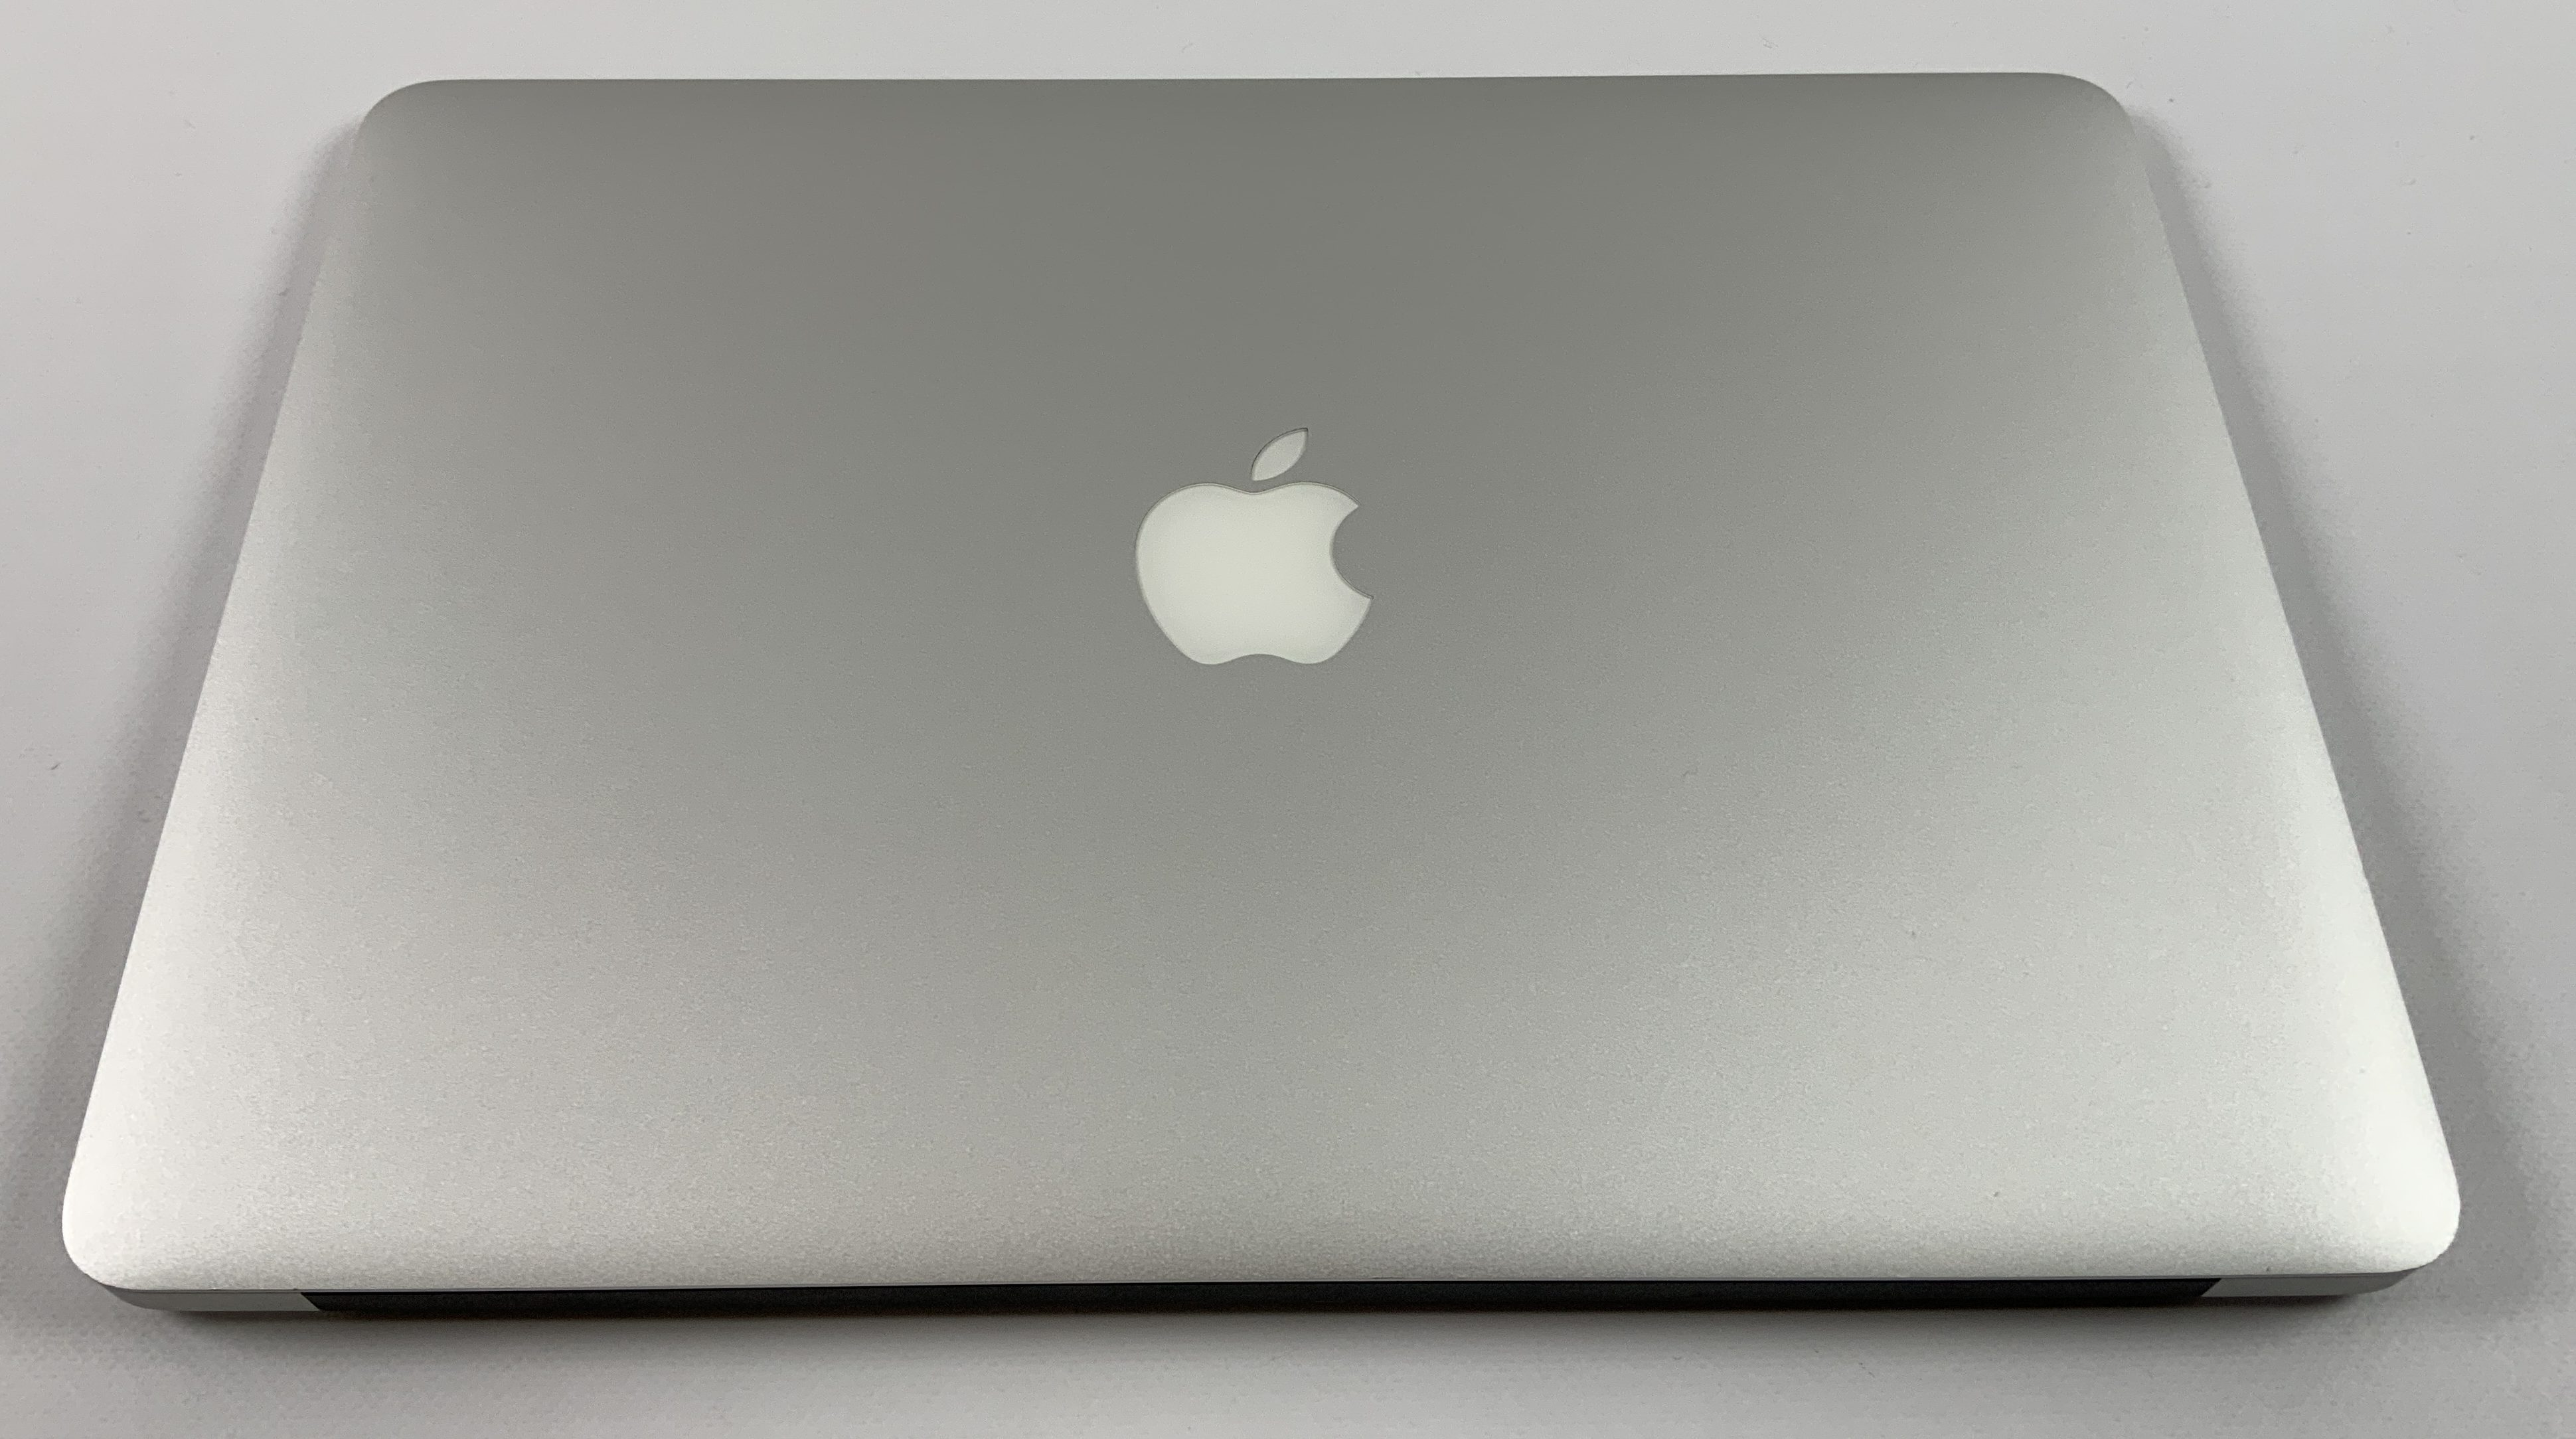 "MacBook Air 13"" Early 2014 (Intel Core i5 1.4 GHz 8 GB RAM 128 GB SSD), Intel Core i5 1.4 GHz, 8 GB RAM, 128 GB SSD, Kuva 2"